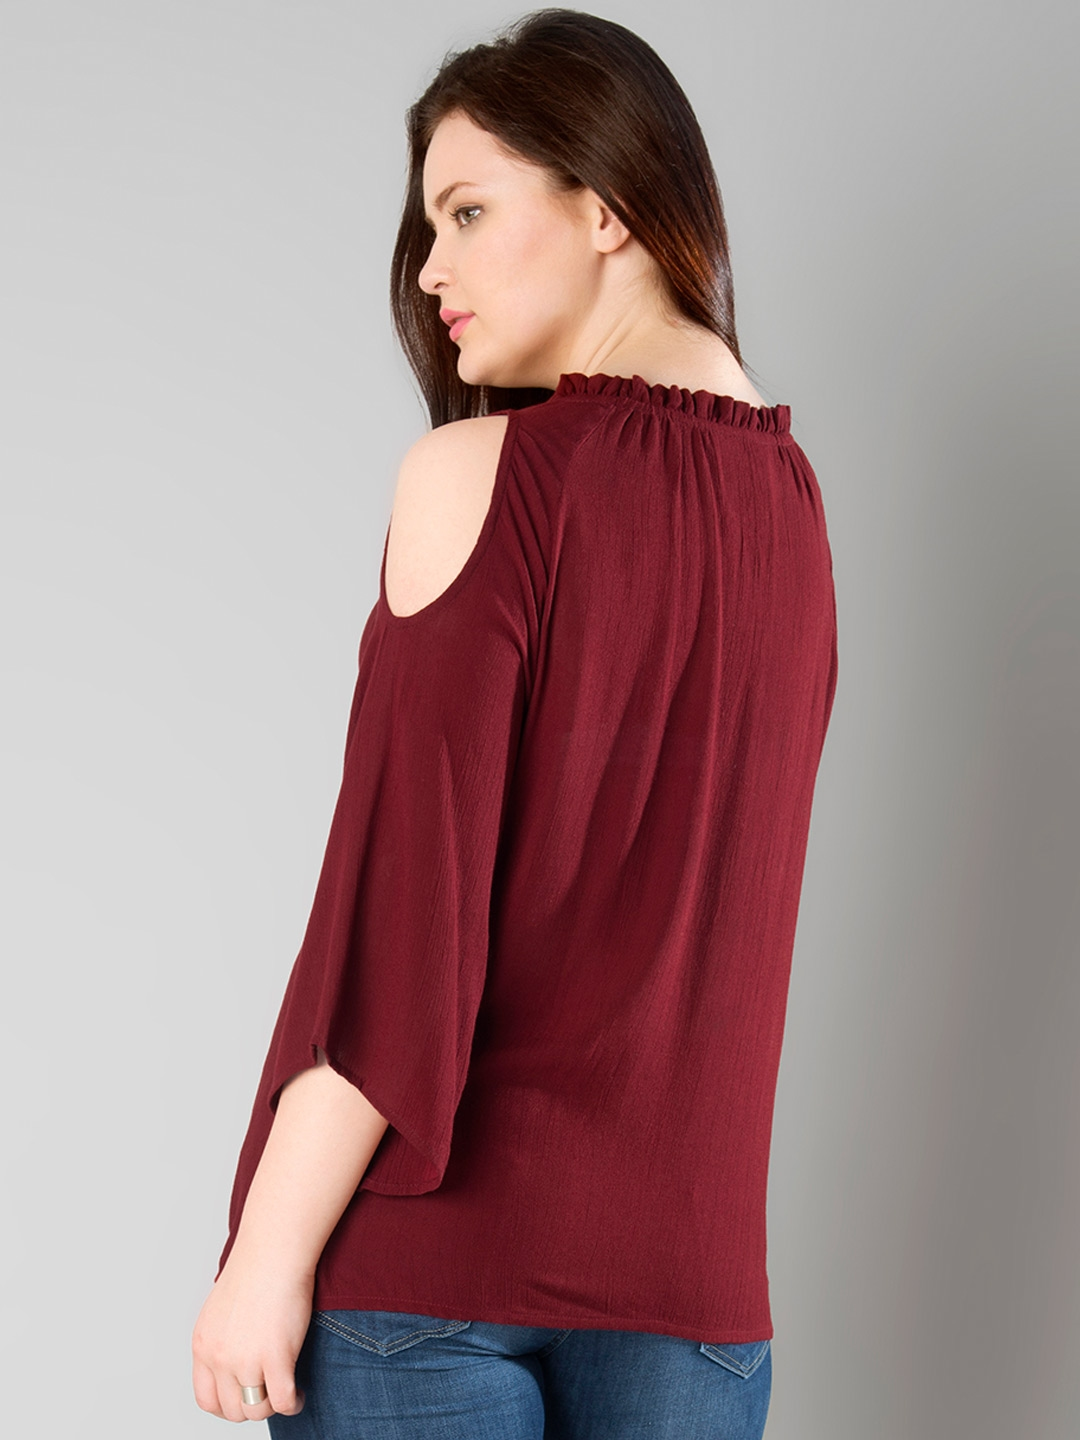 c97d2eacd5222 Buy FabAlley Curve Maroon Cold Shoulder Top - Tops for Women 1773914 ...